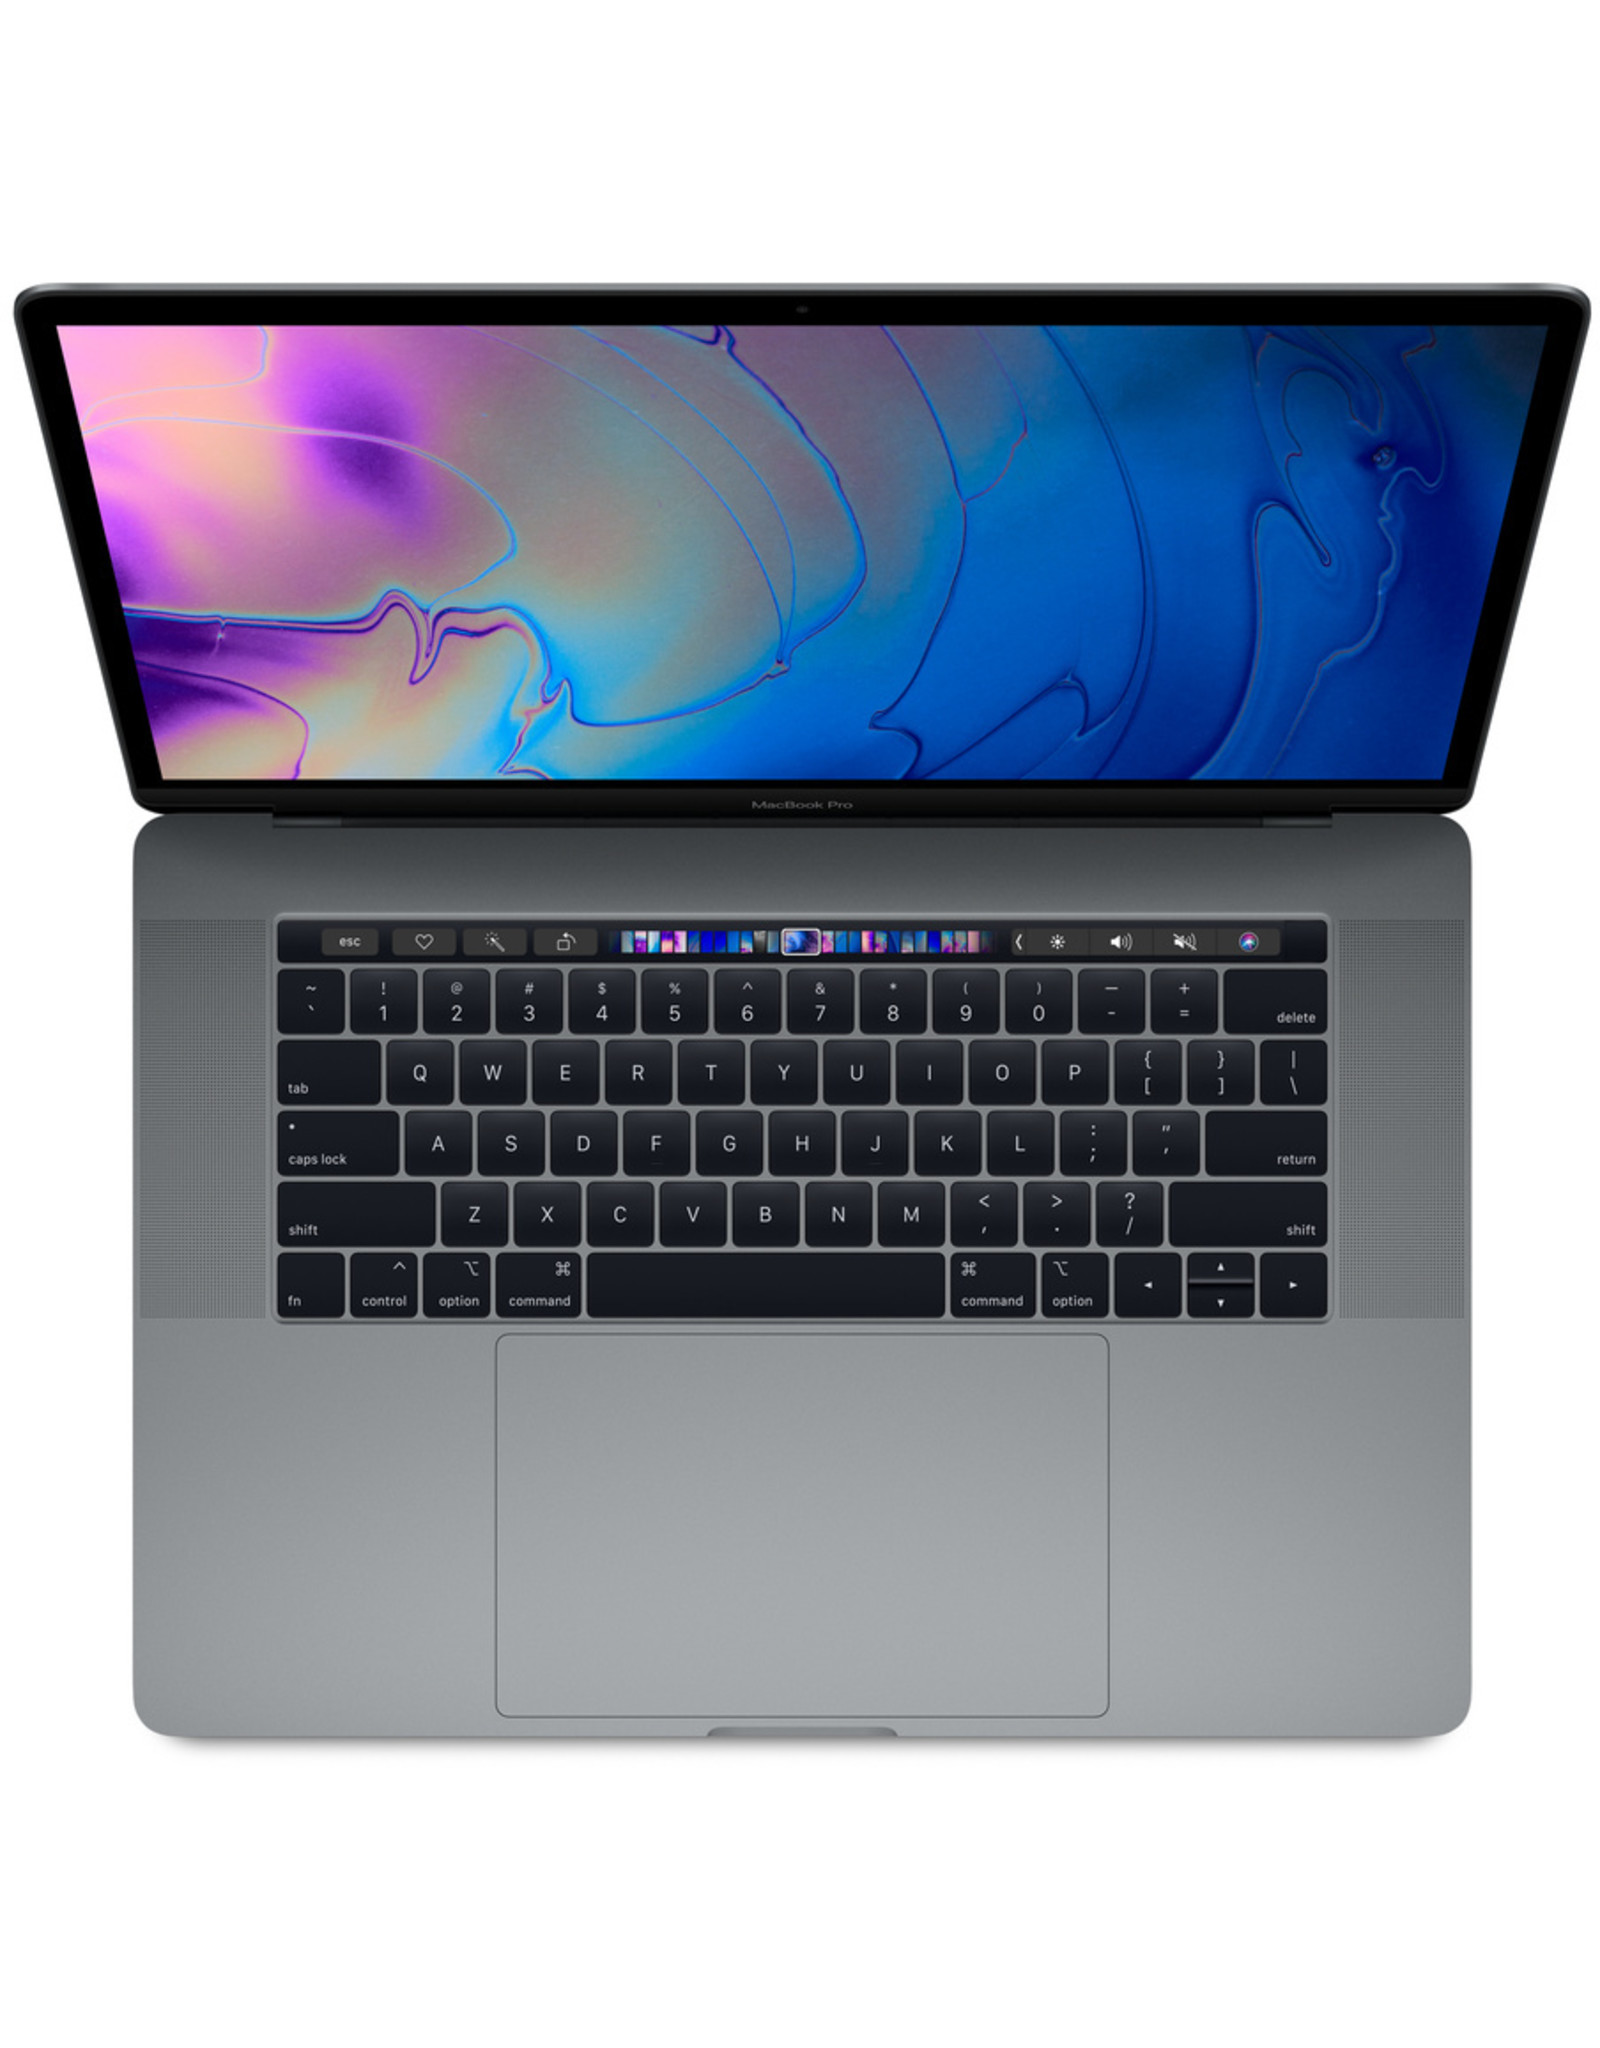 MACBOOK PRO 13.3- TB - GREY / 1.4GHZ QUAD-CORE 8TH-GEN